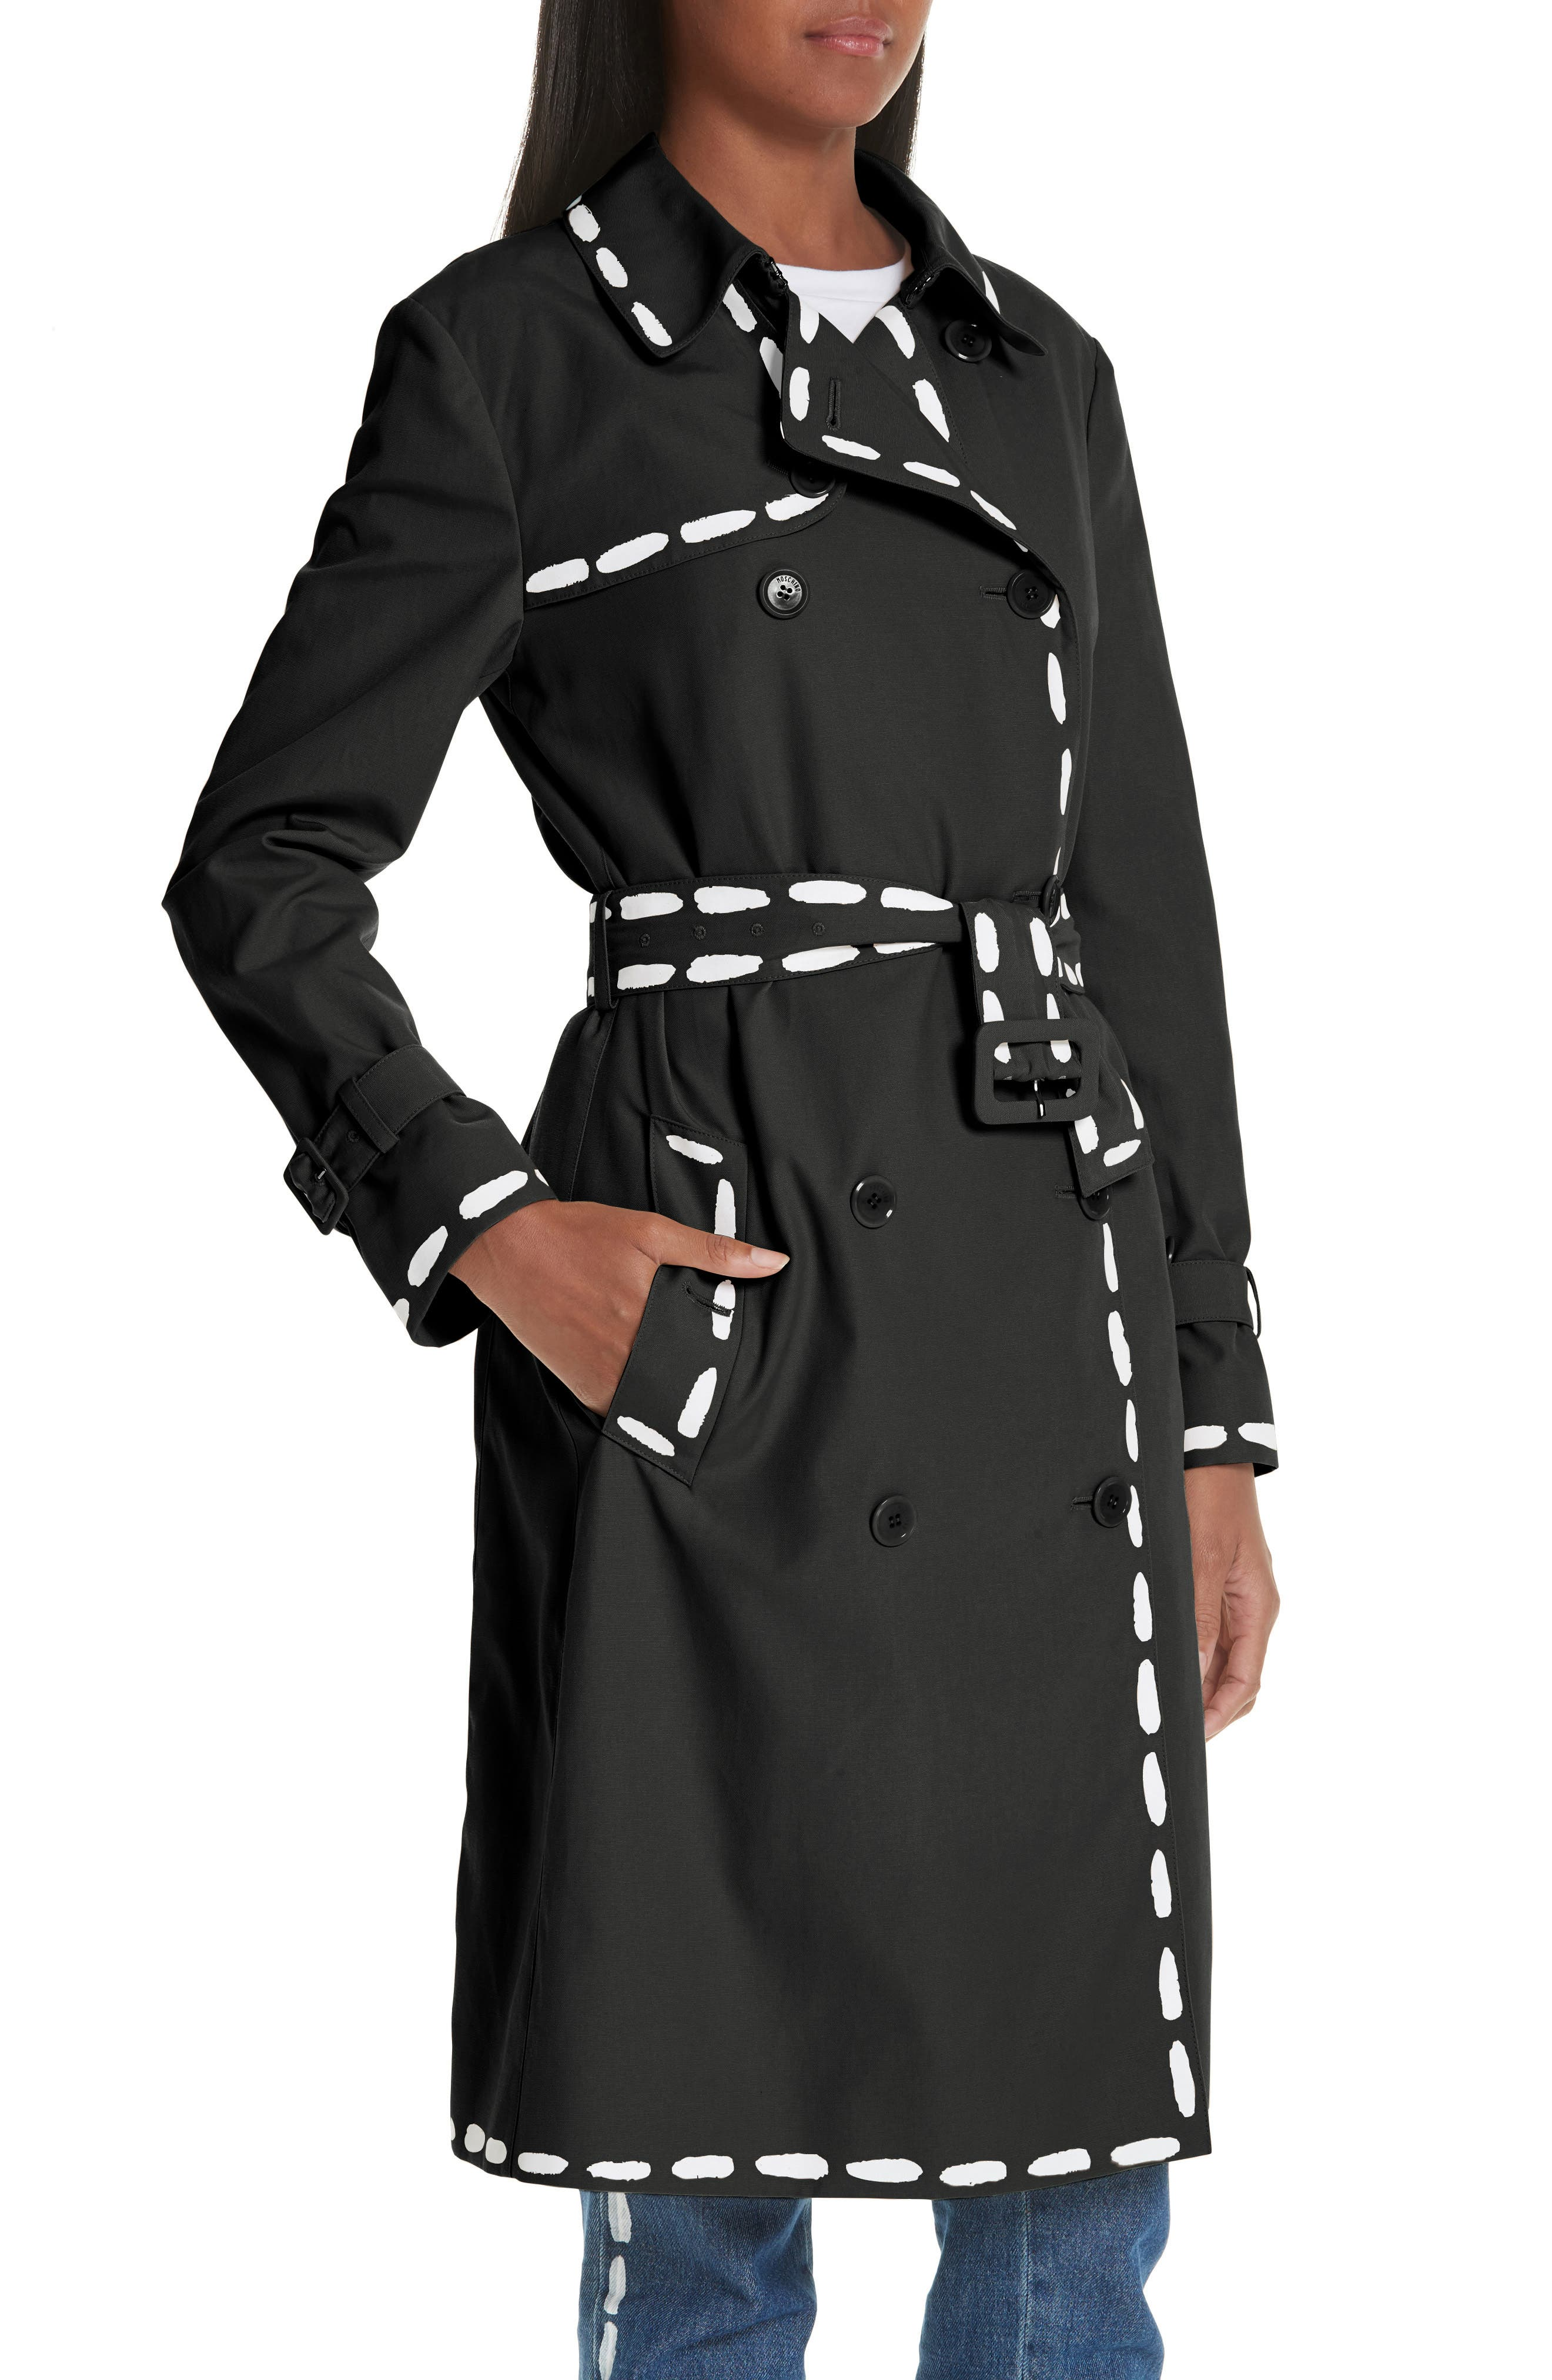 MOSCHINO, Dotted Line Trench Coat, Alternate thumbnail 4, color, BLACK